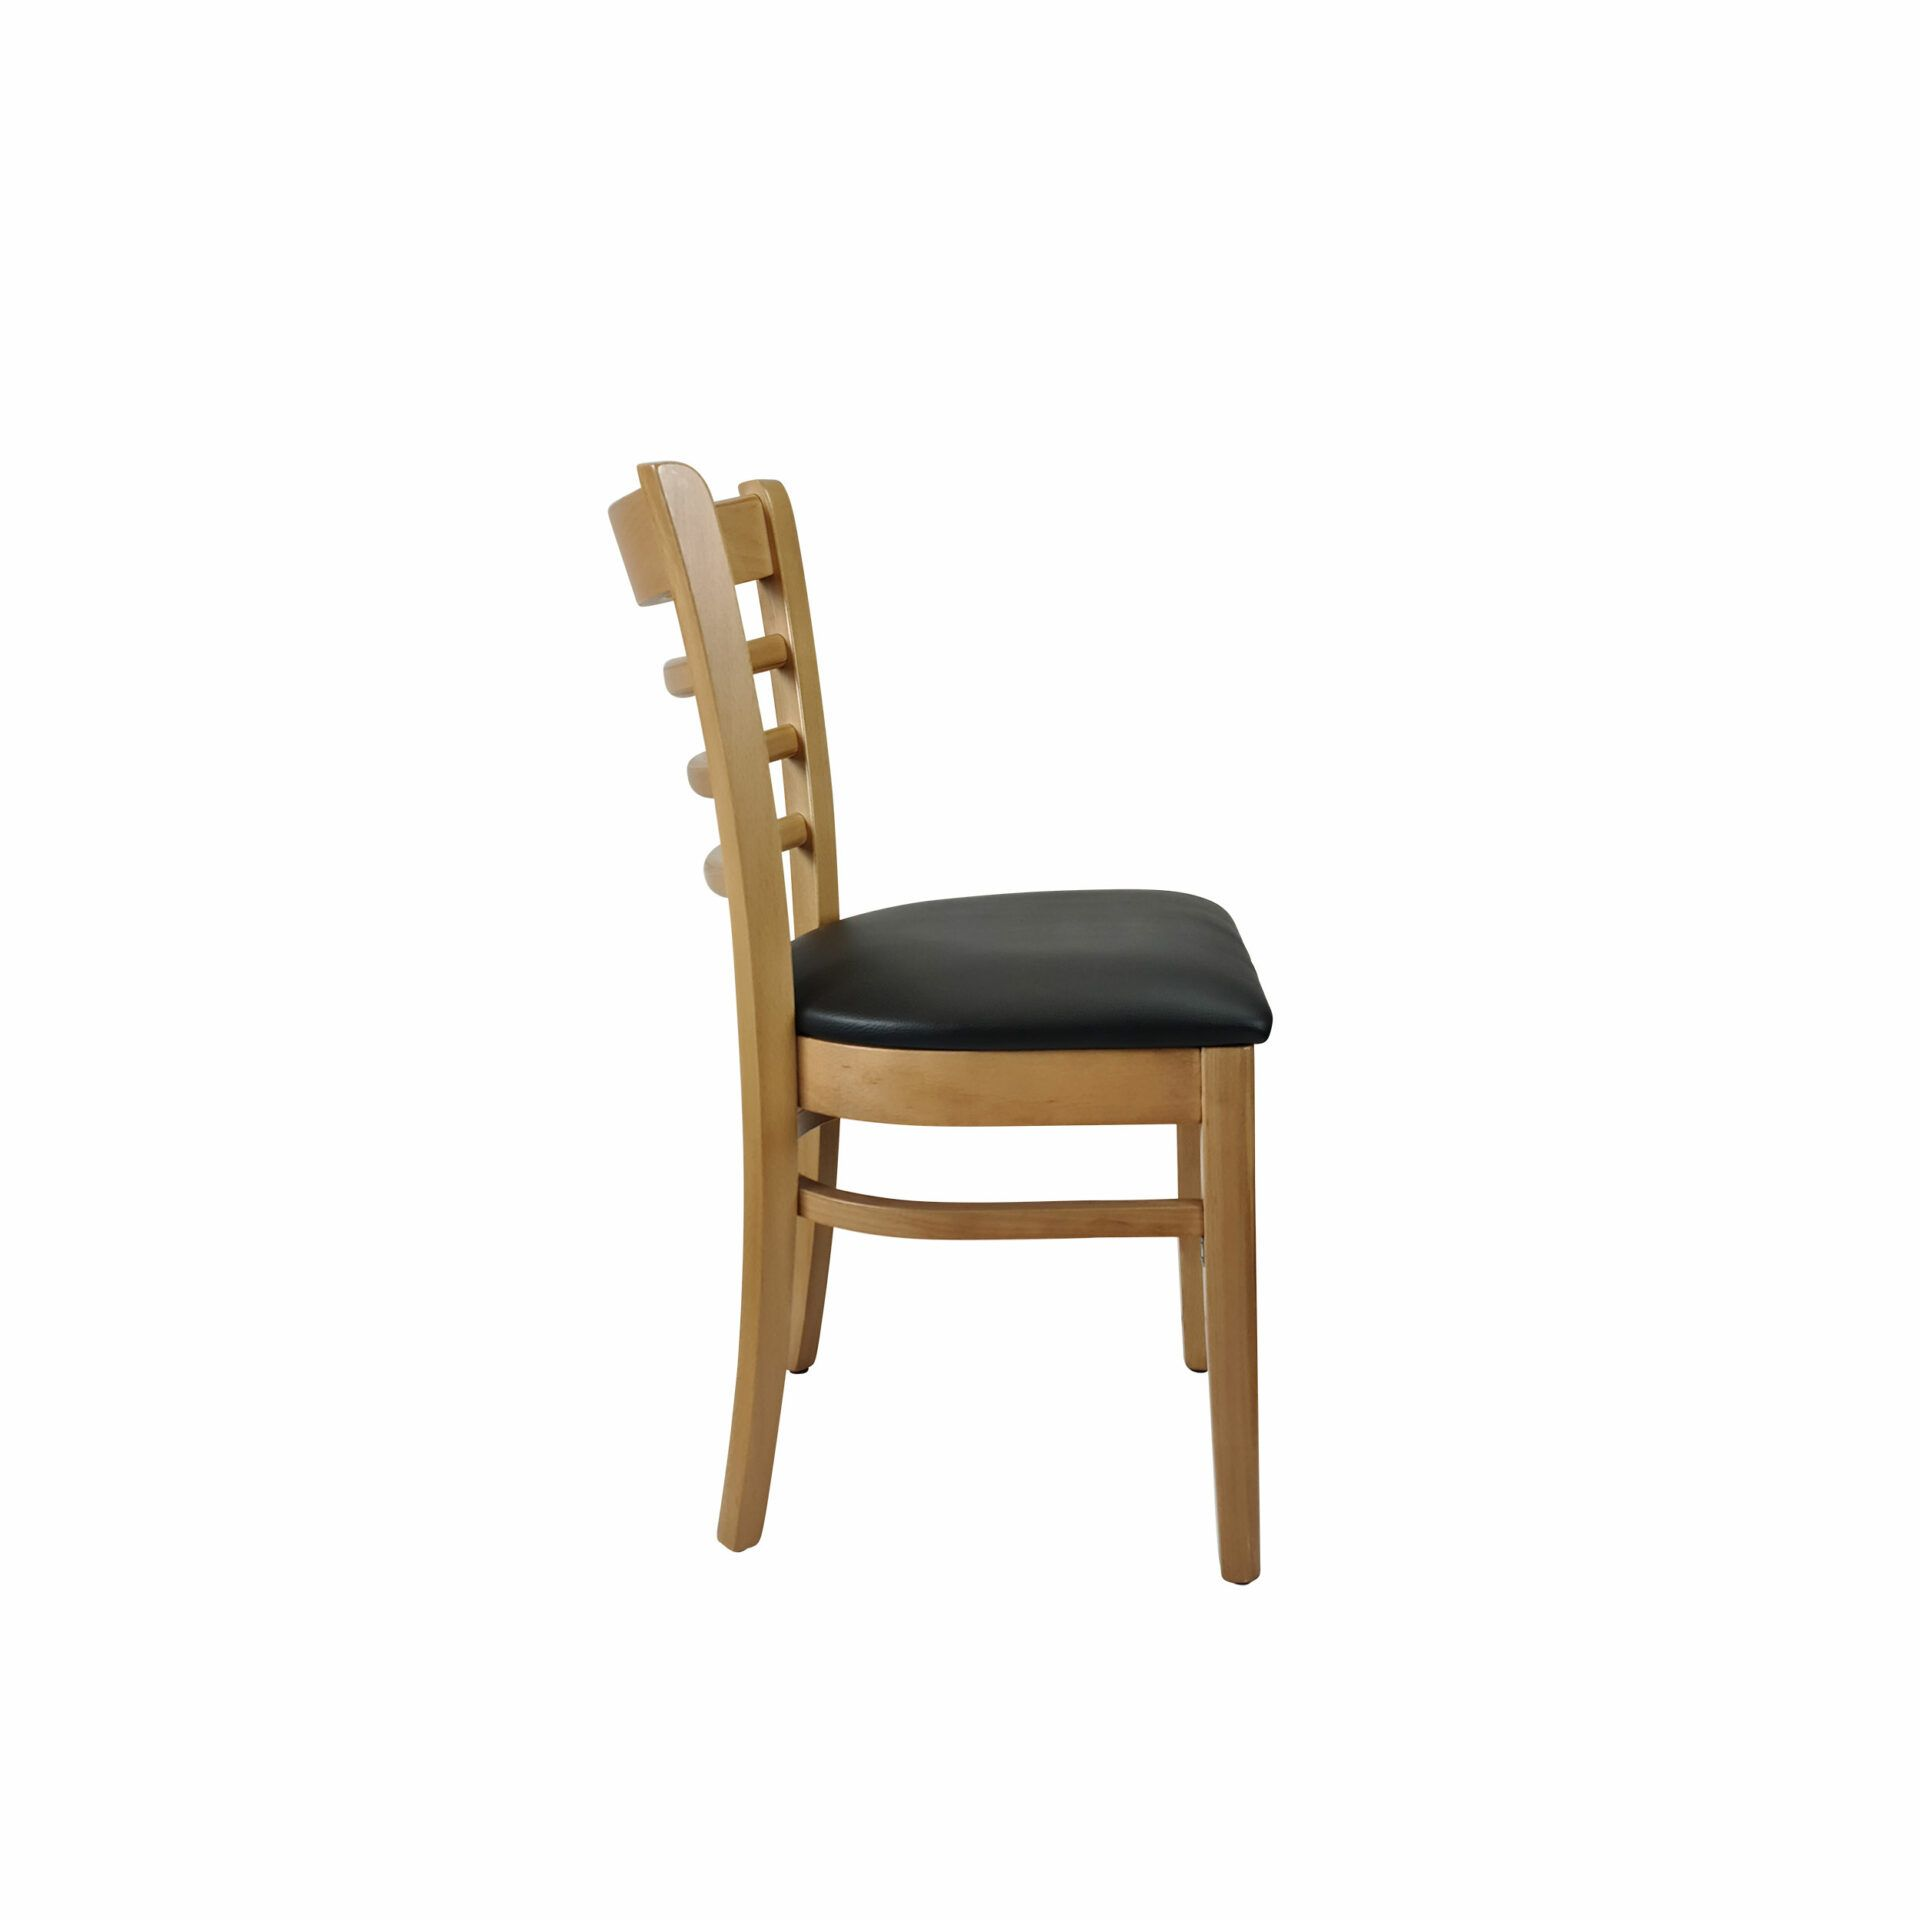 florence chair natural.black cushion side